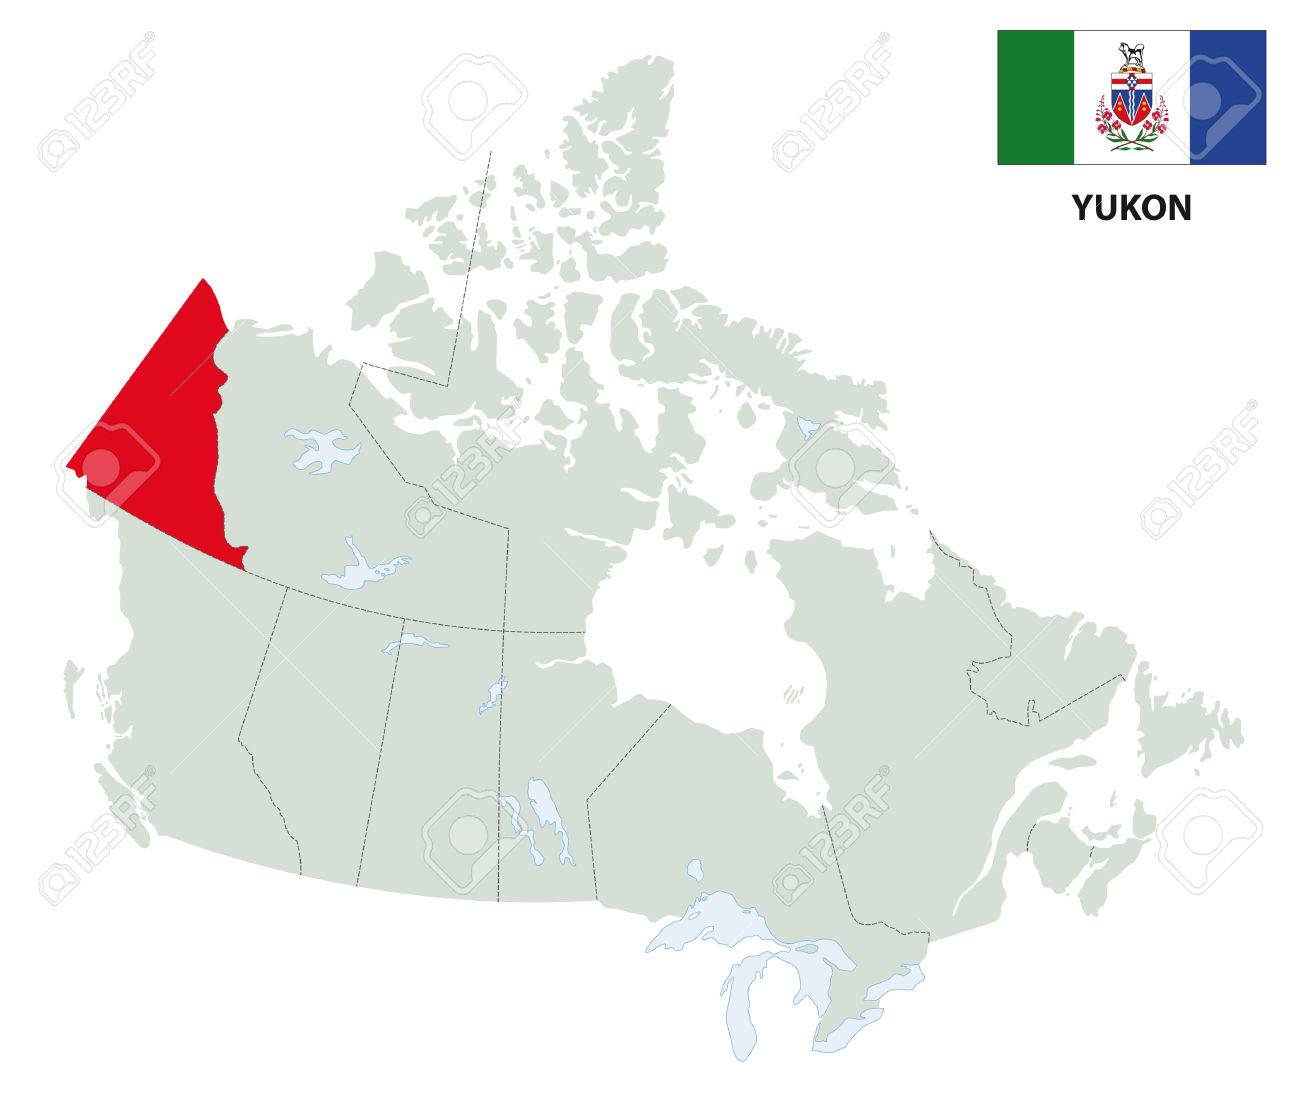 physical map of canada, detailed map of canada, physical features of canada, blank map of canada, major languages of canada, isoline map of canada, population pyramid of canada, trace map of canada, map of us and canada, labeled map of canada, climate map of canada, time map of canada, national symbols of canada, airport map of canada, resource map of canada, solid map of canada, open map of canada, large map of canada, identify map of canada, simple map of canada, on images outline map of canada